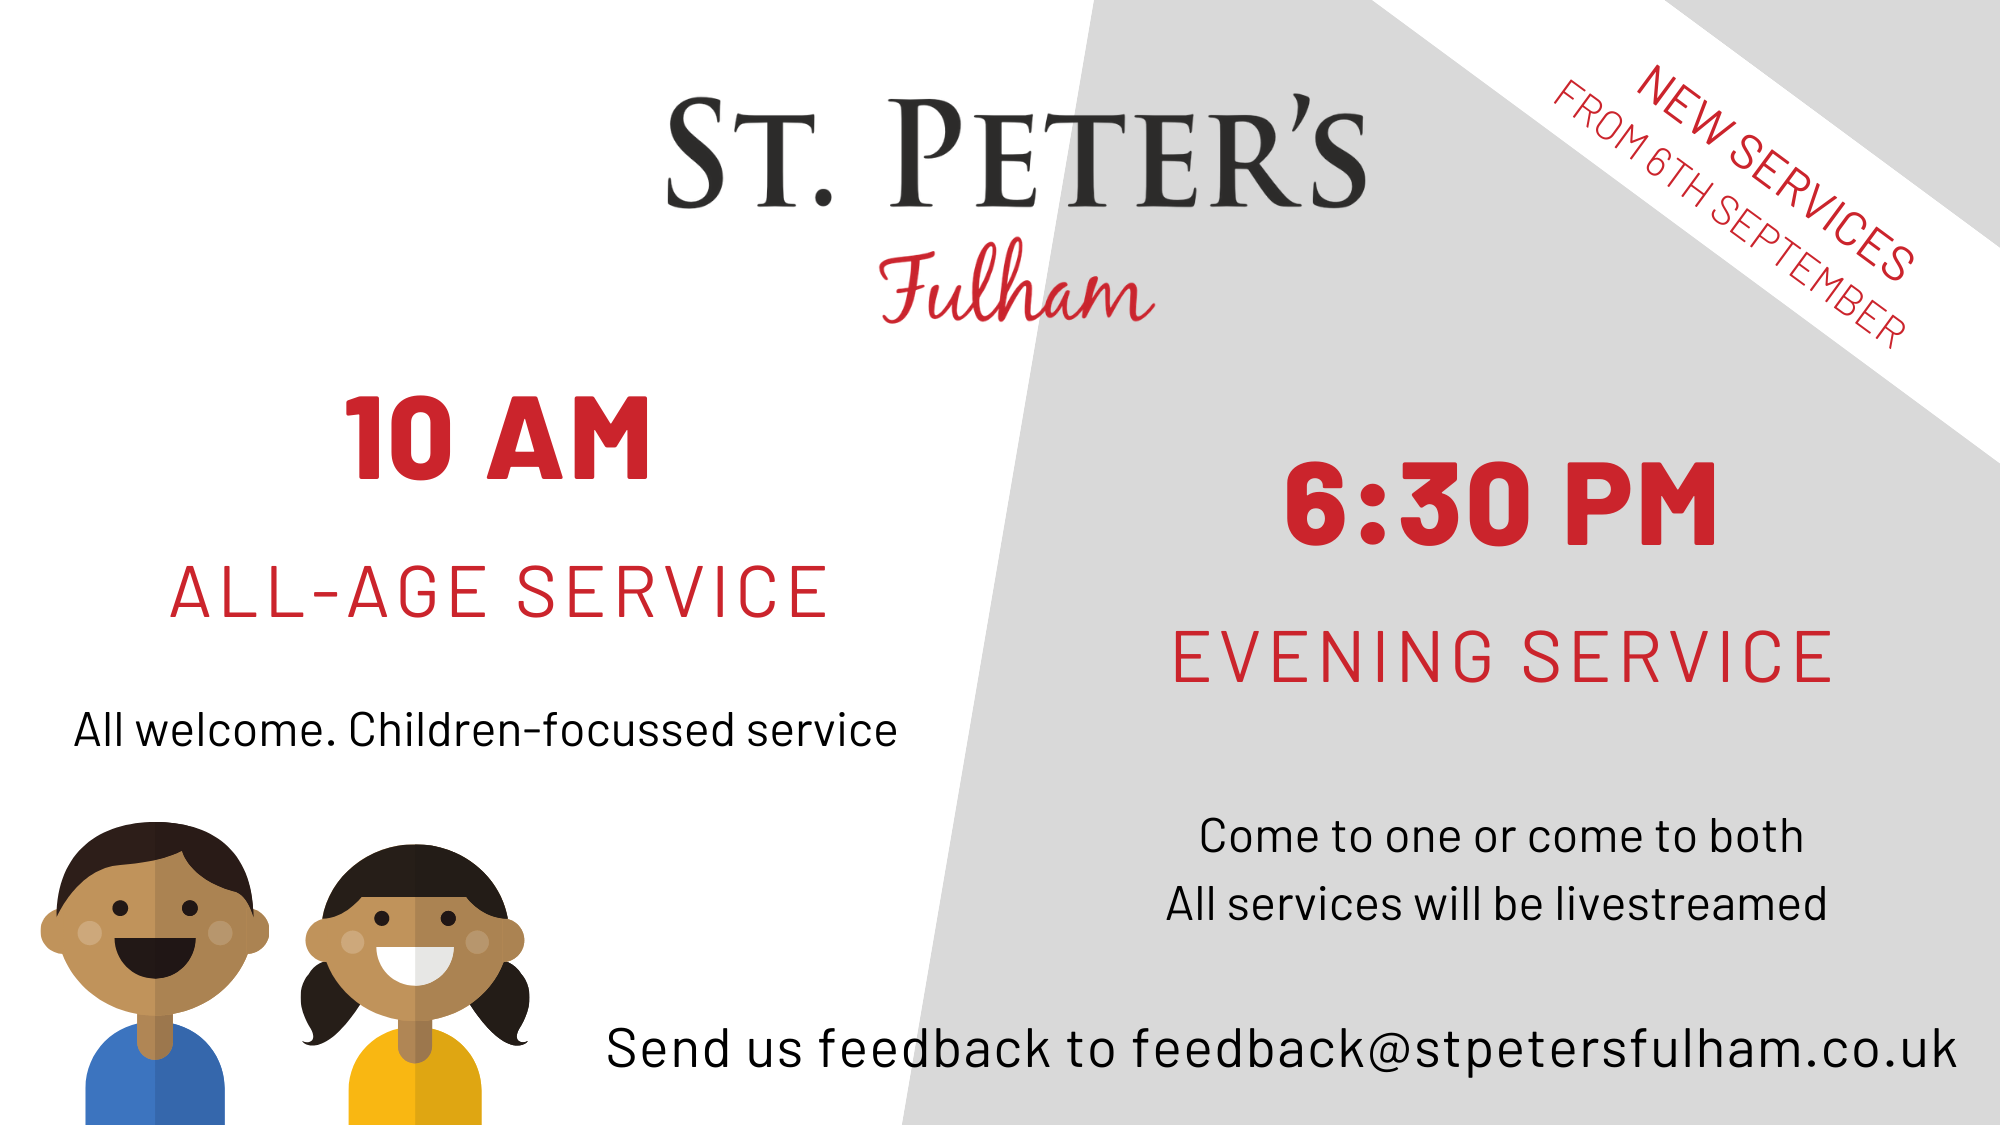 New Services at St Peter's Fulham